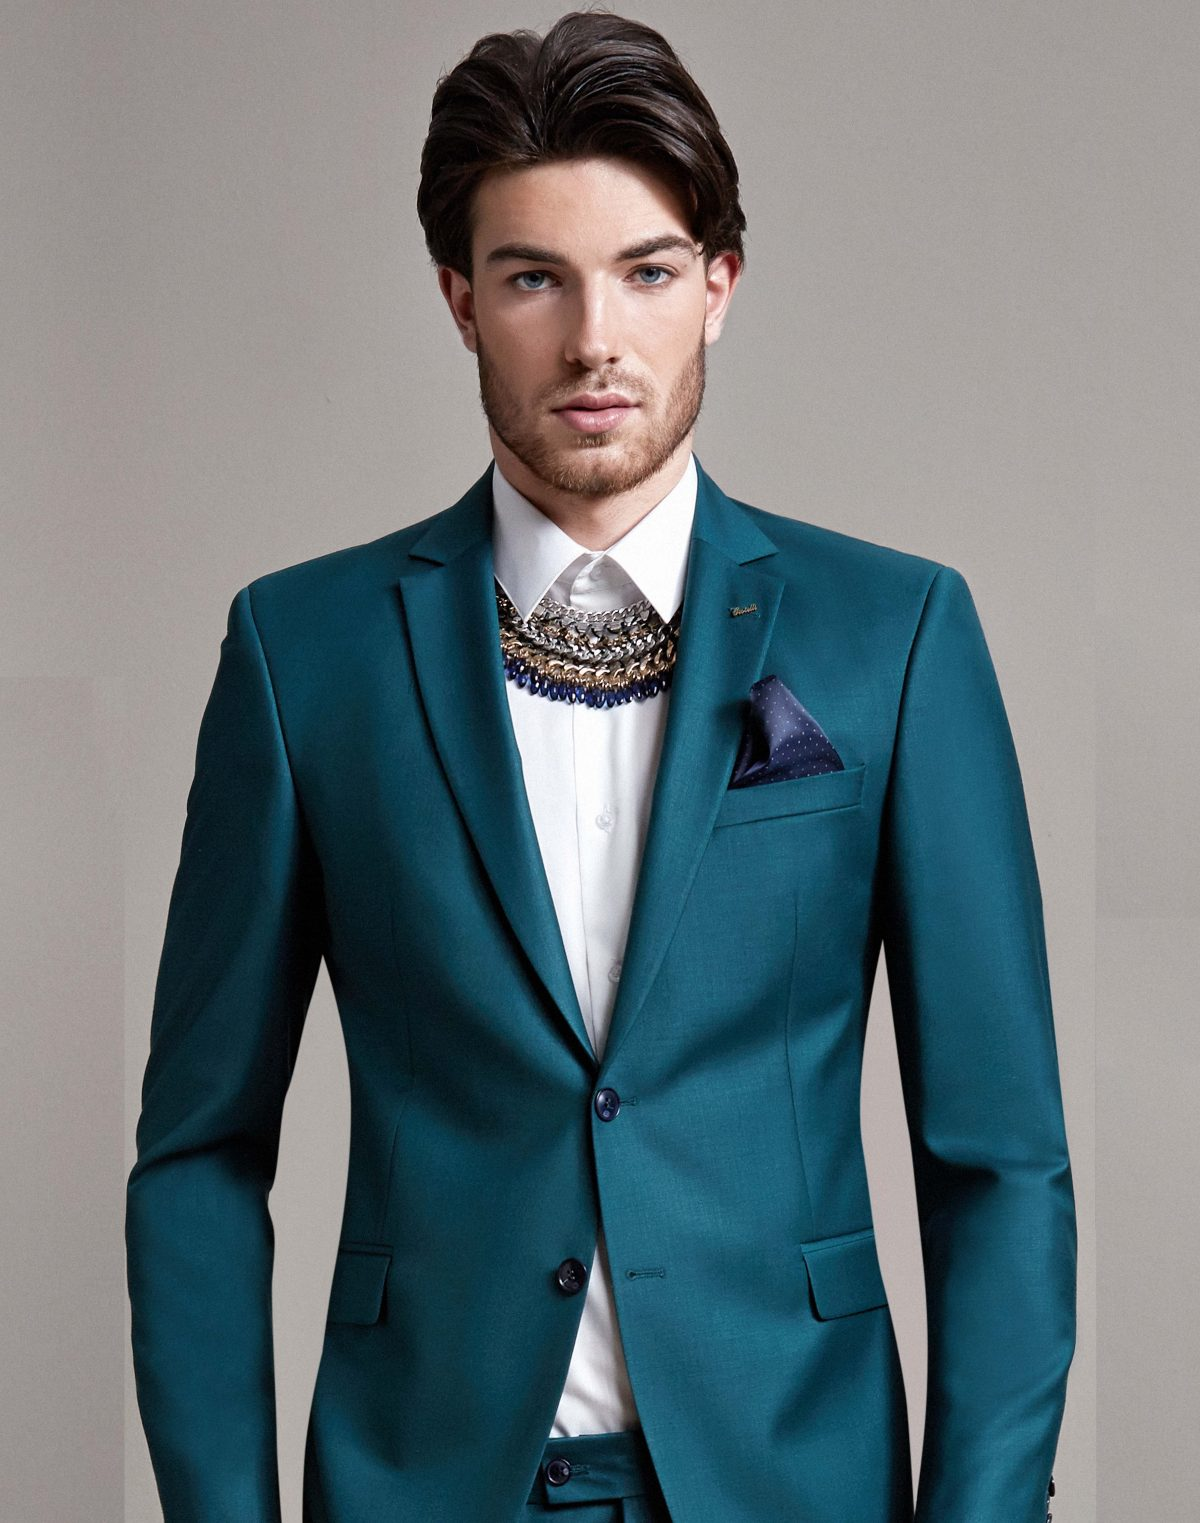 Costum Barbatesc Slim Fit Verde Lana 950 Lei